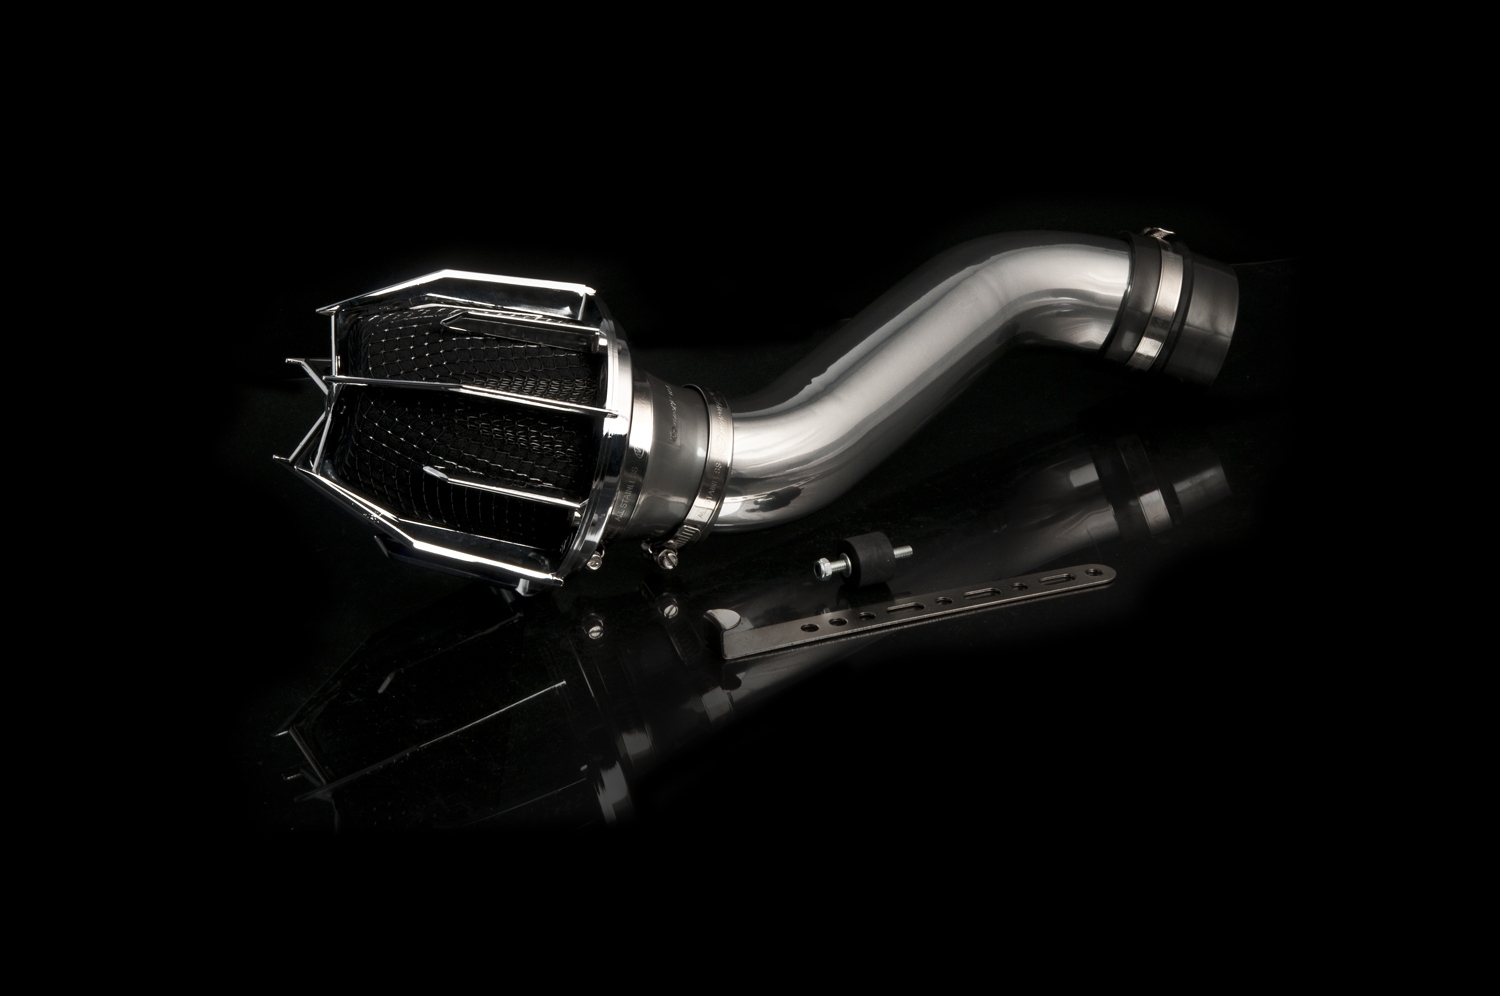 Subaru Outback 6 Cyl Model 2001-2004 Weapon-R Dragon Air Intake